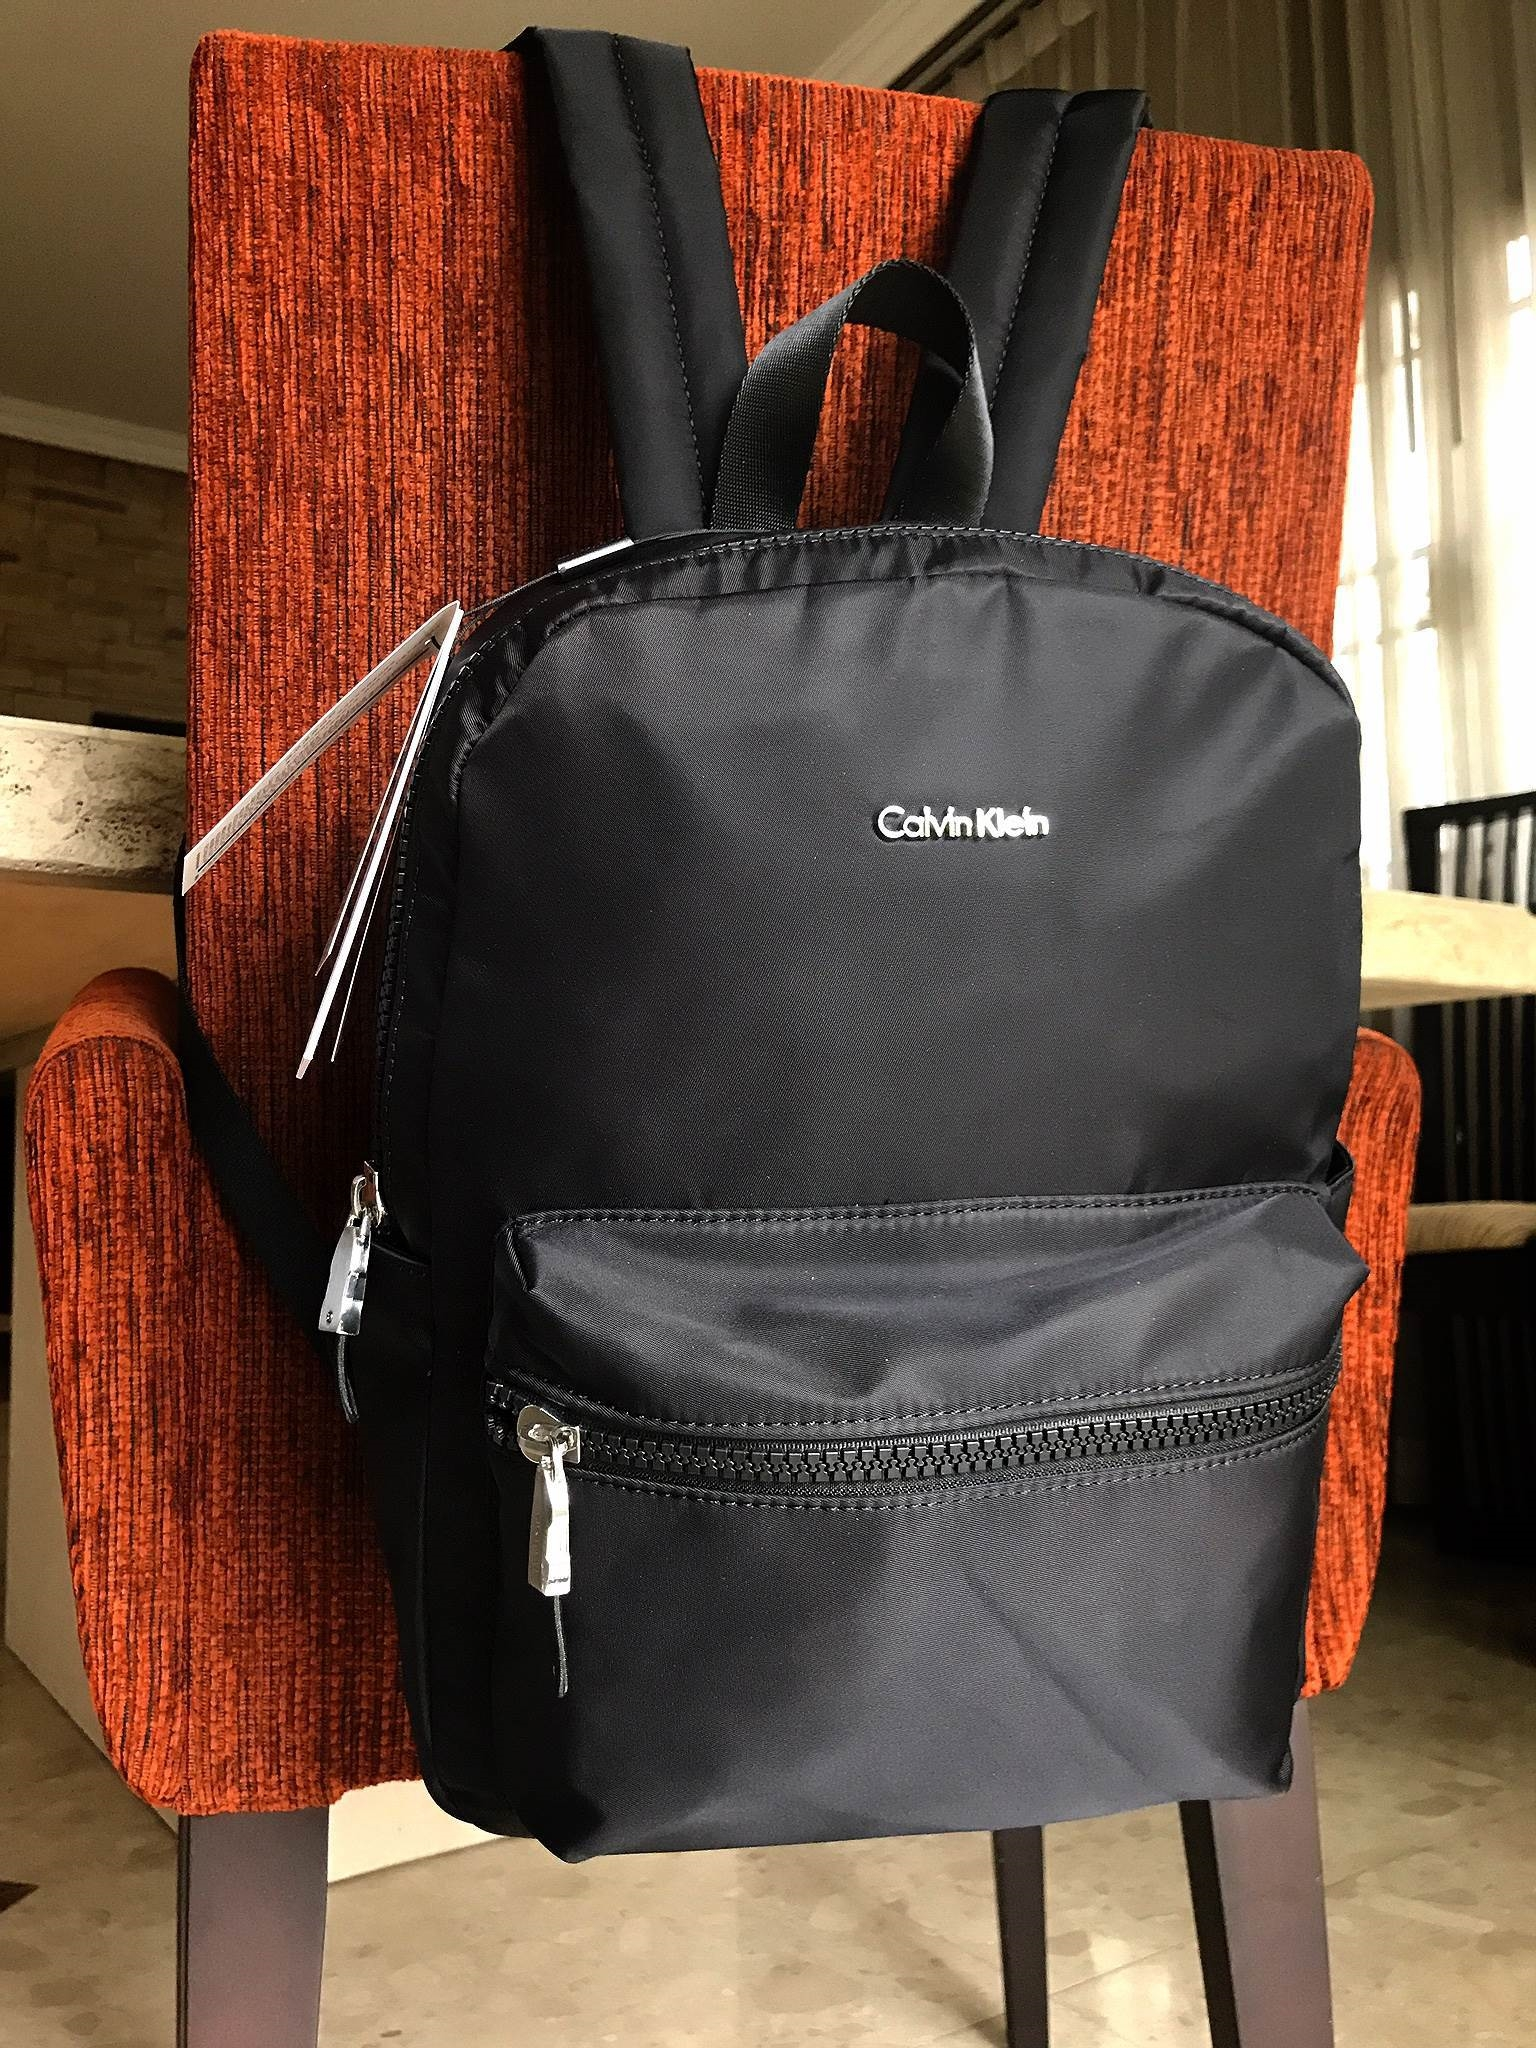 Calvin Klein Jeans Nylon Backpack 2018 *สินค้า outlet